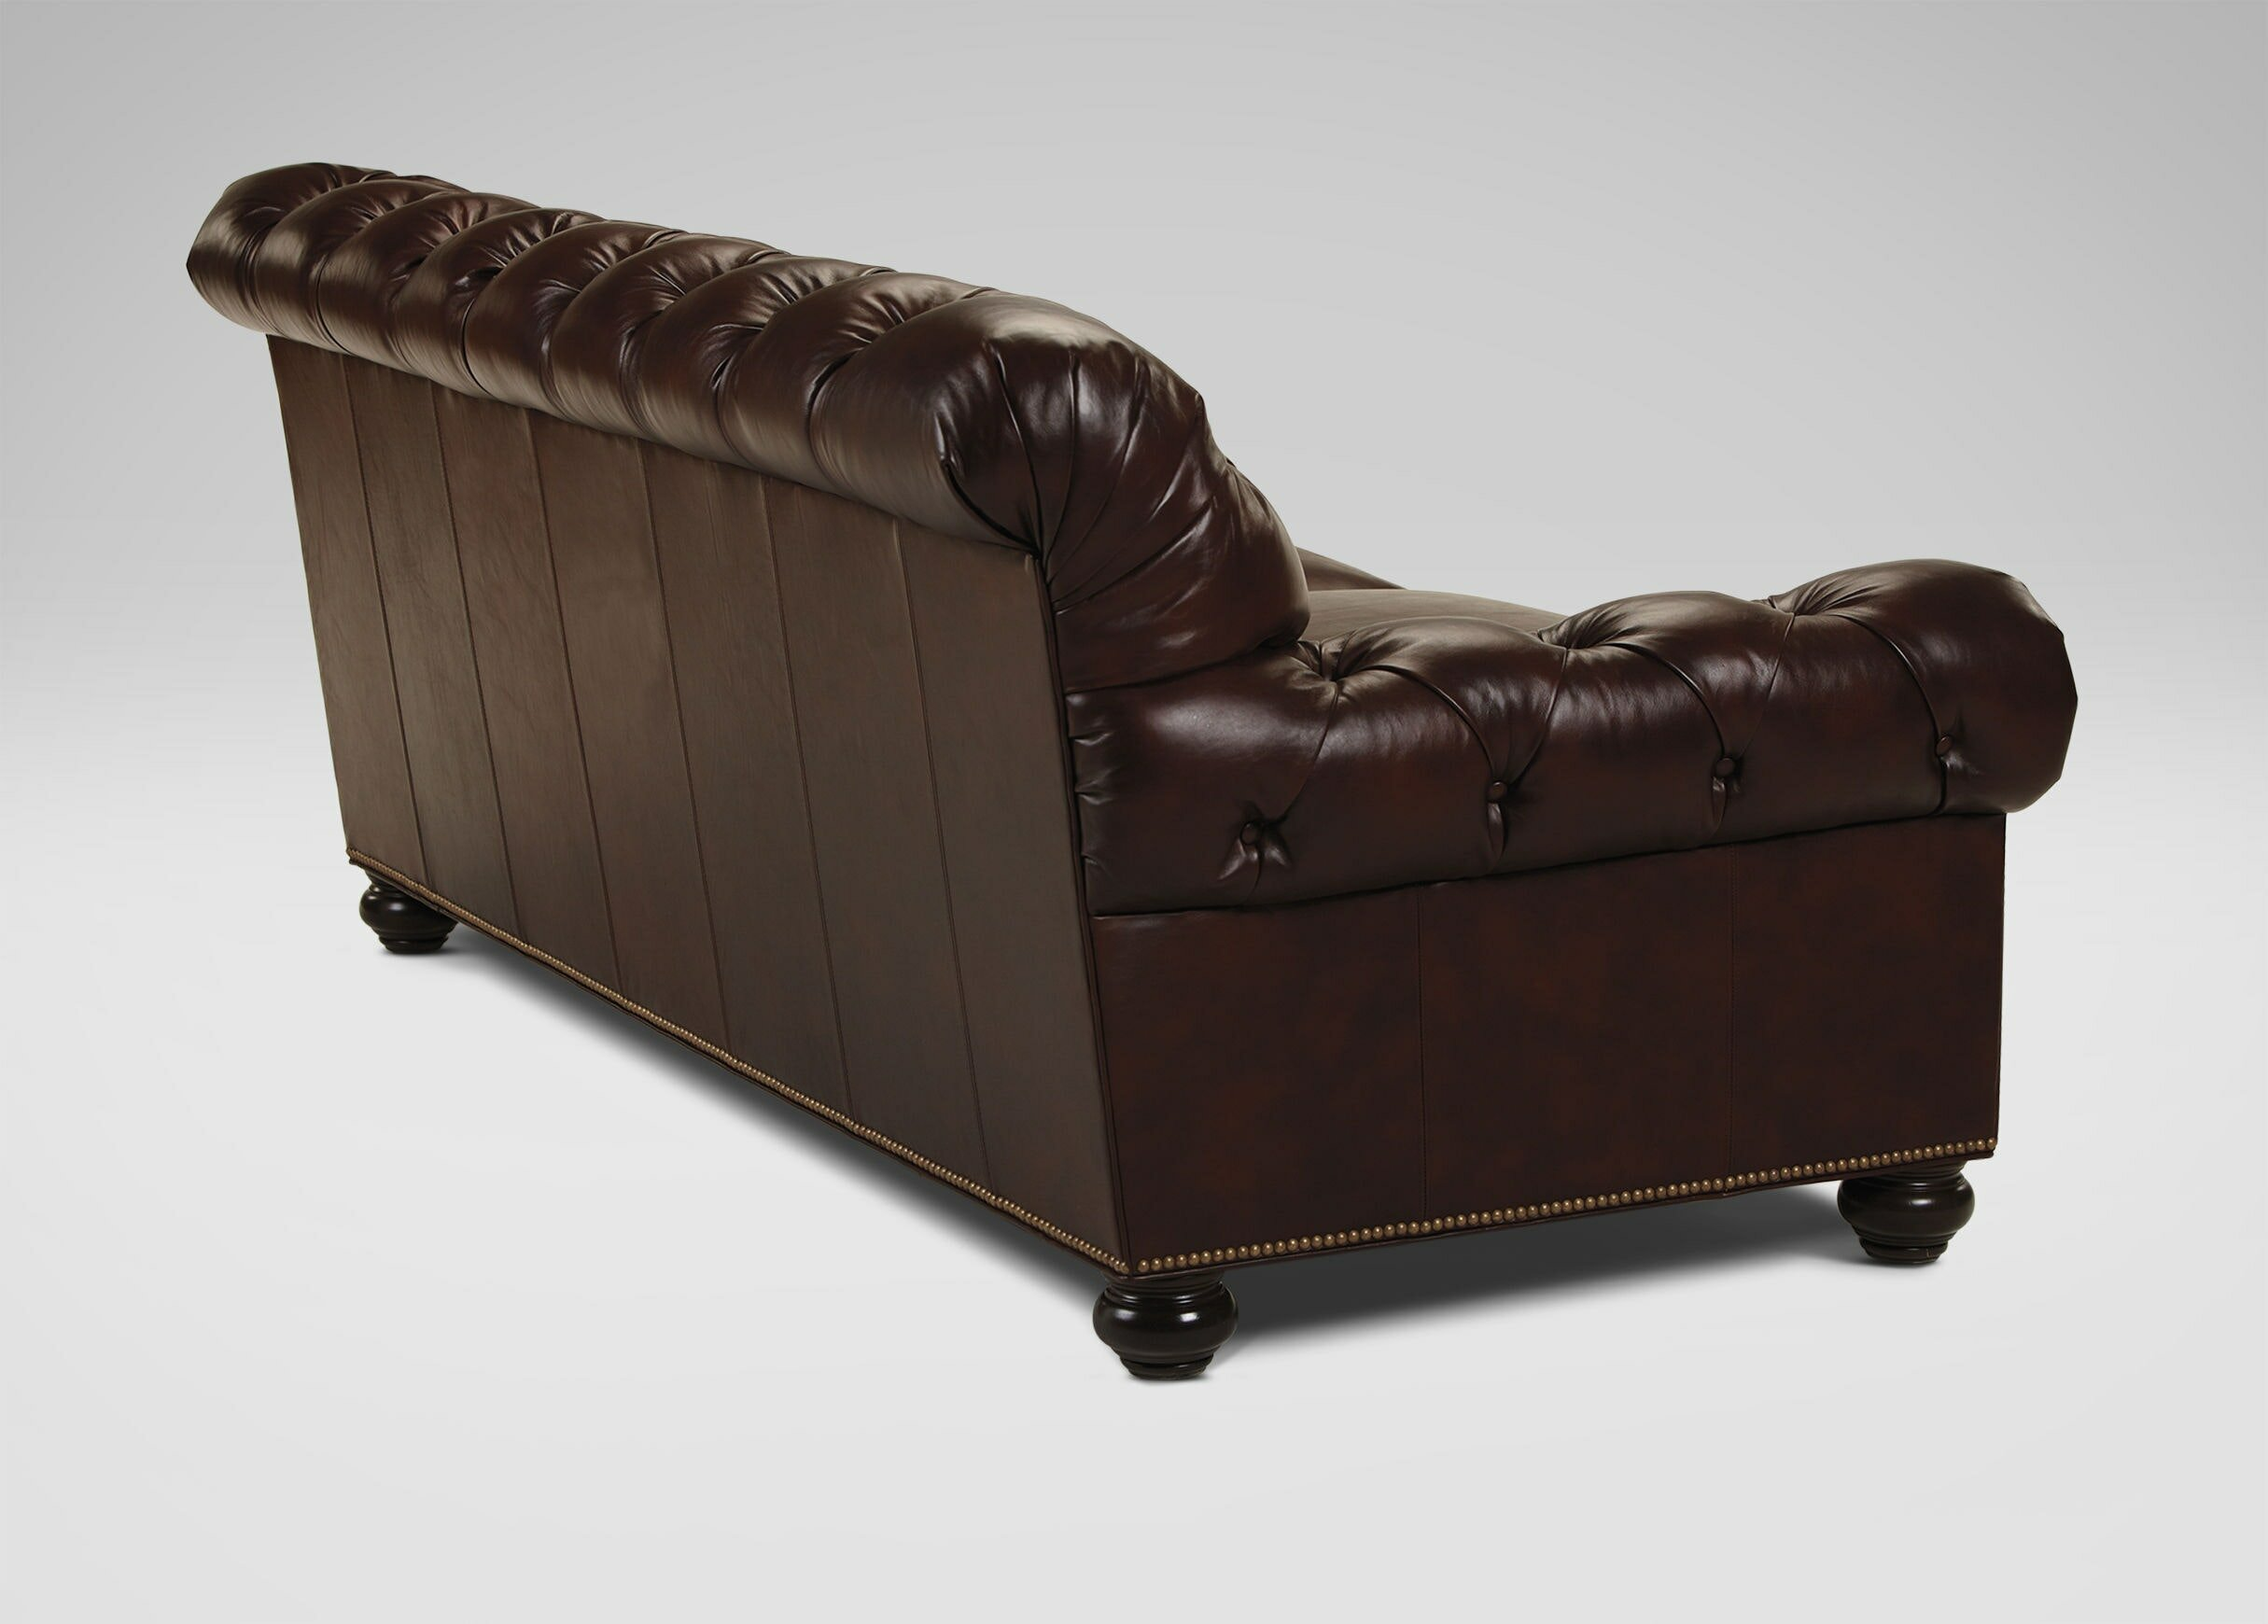 Ethan Allen Leather Couch | Ethan Allen Leather Sectionals | Ethan Allen Bennett Sofa